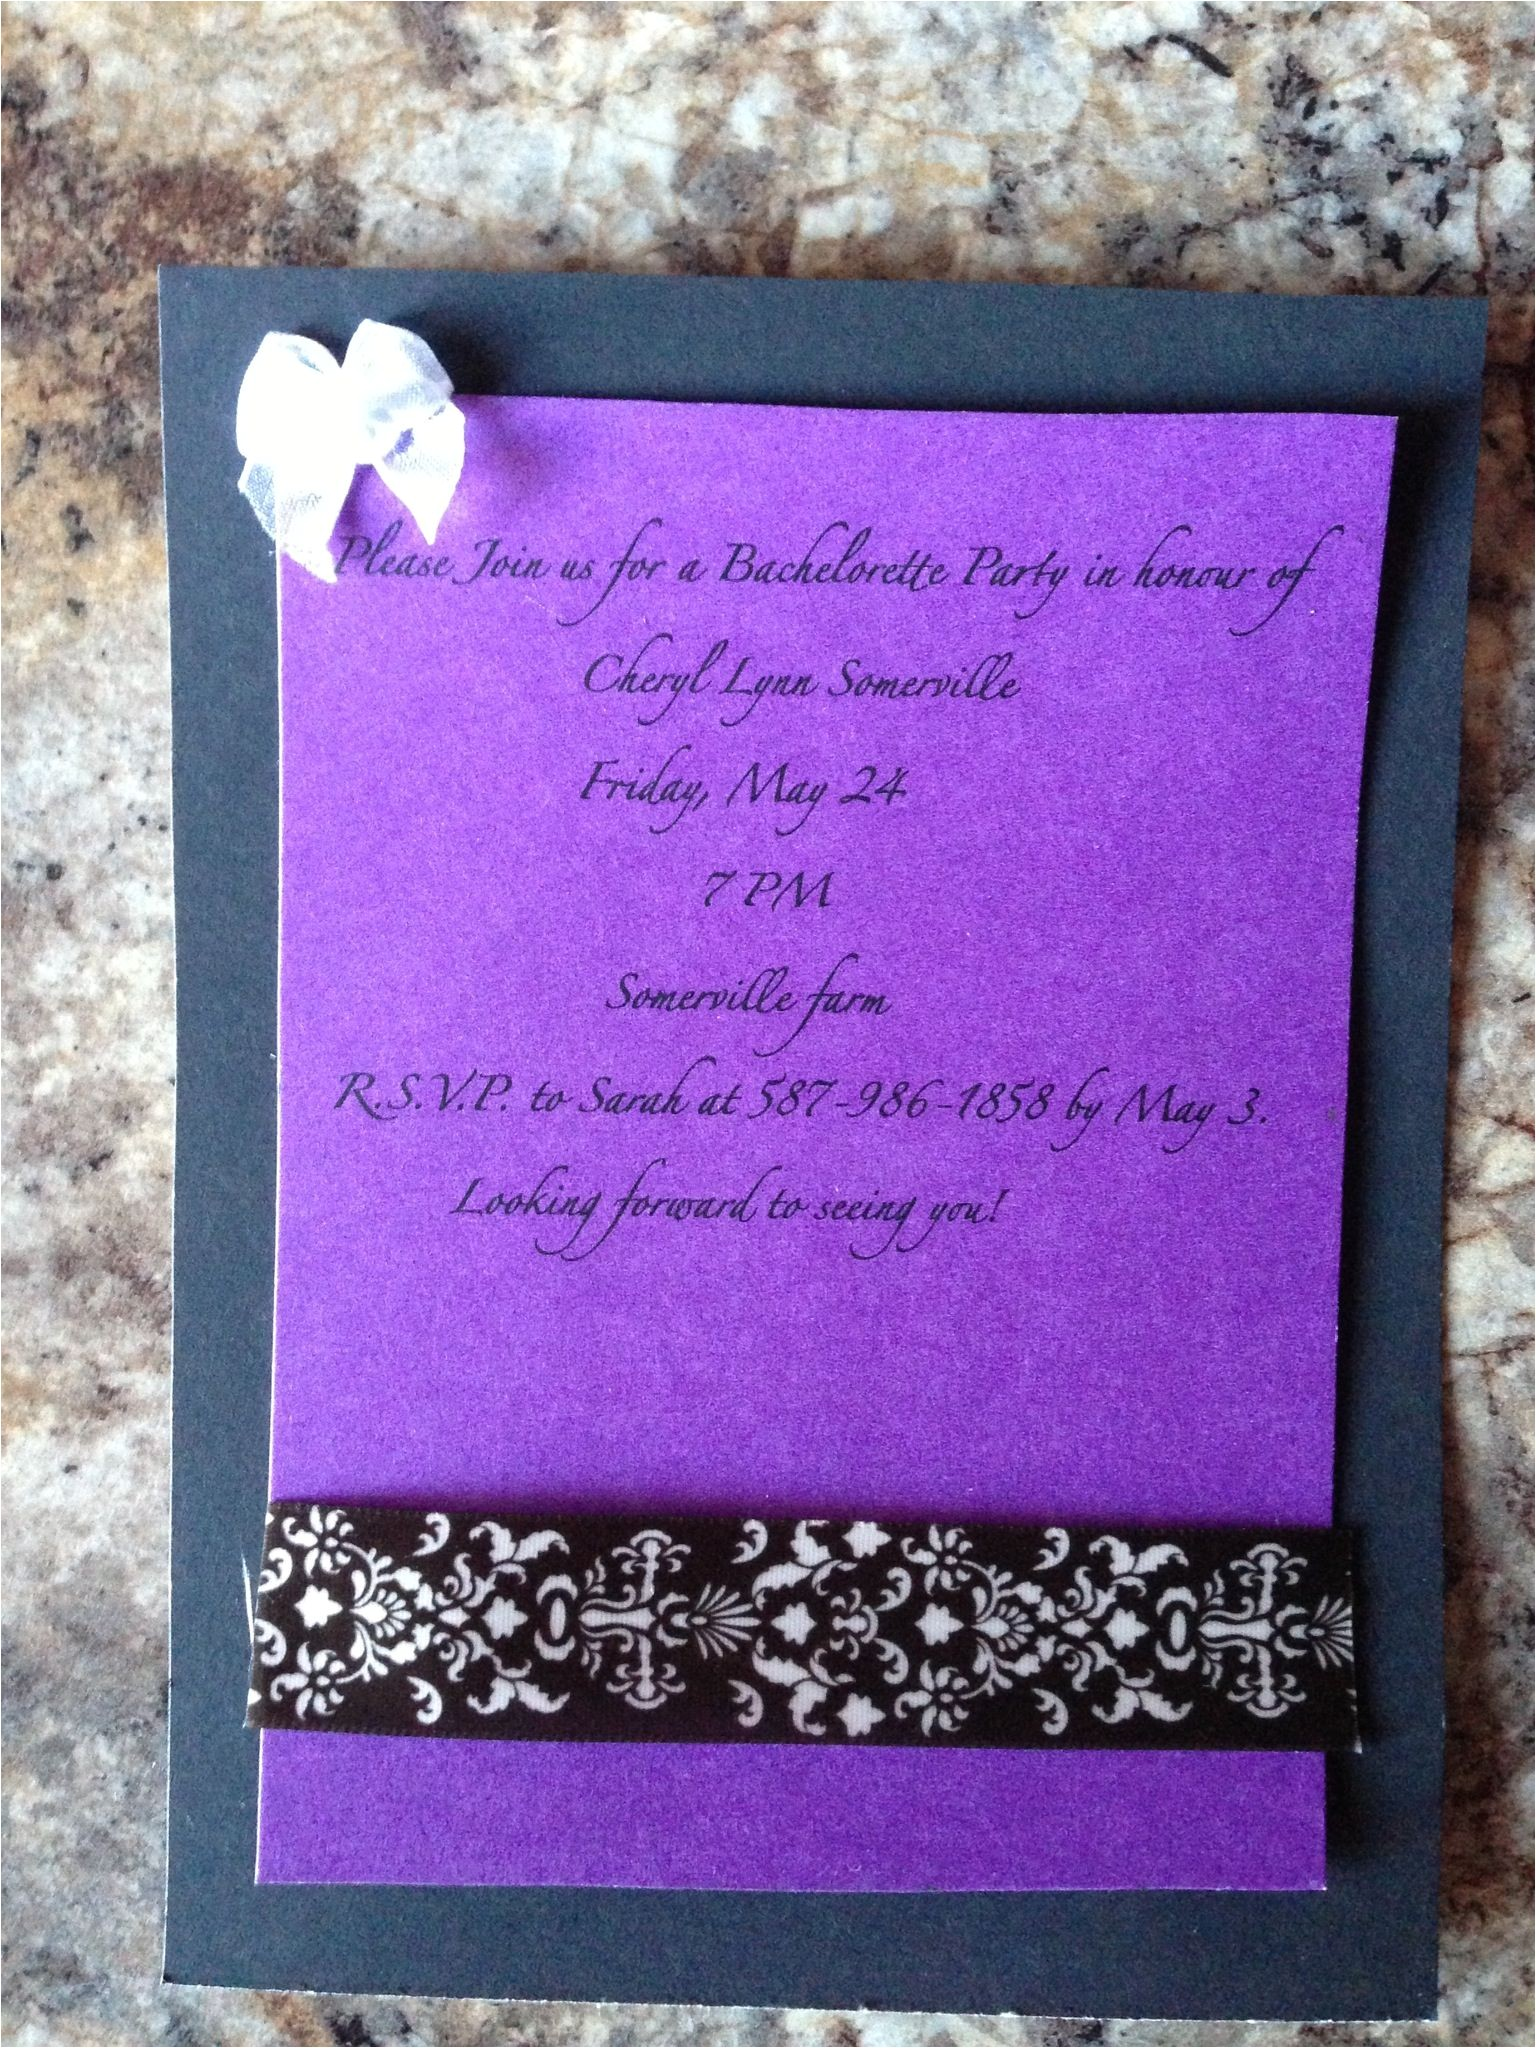 Homemade Bachelorette Party Invitations Homemade Bachelorette Party Invitations